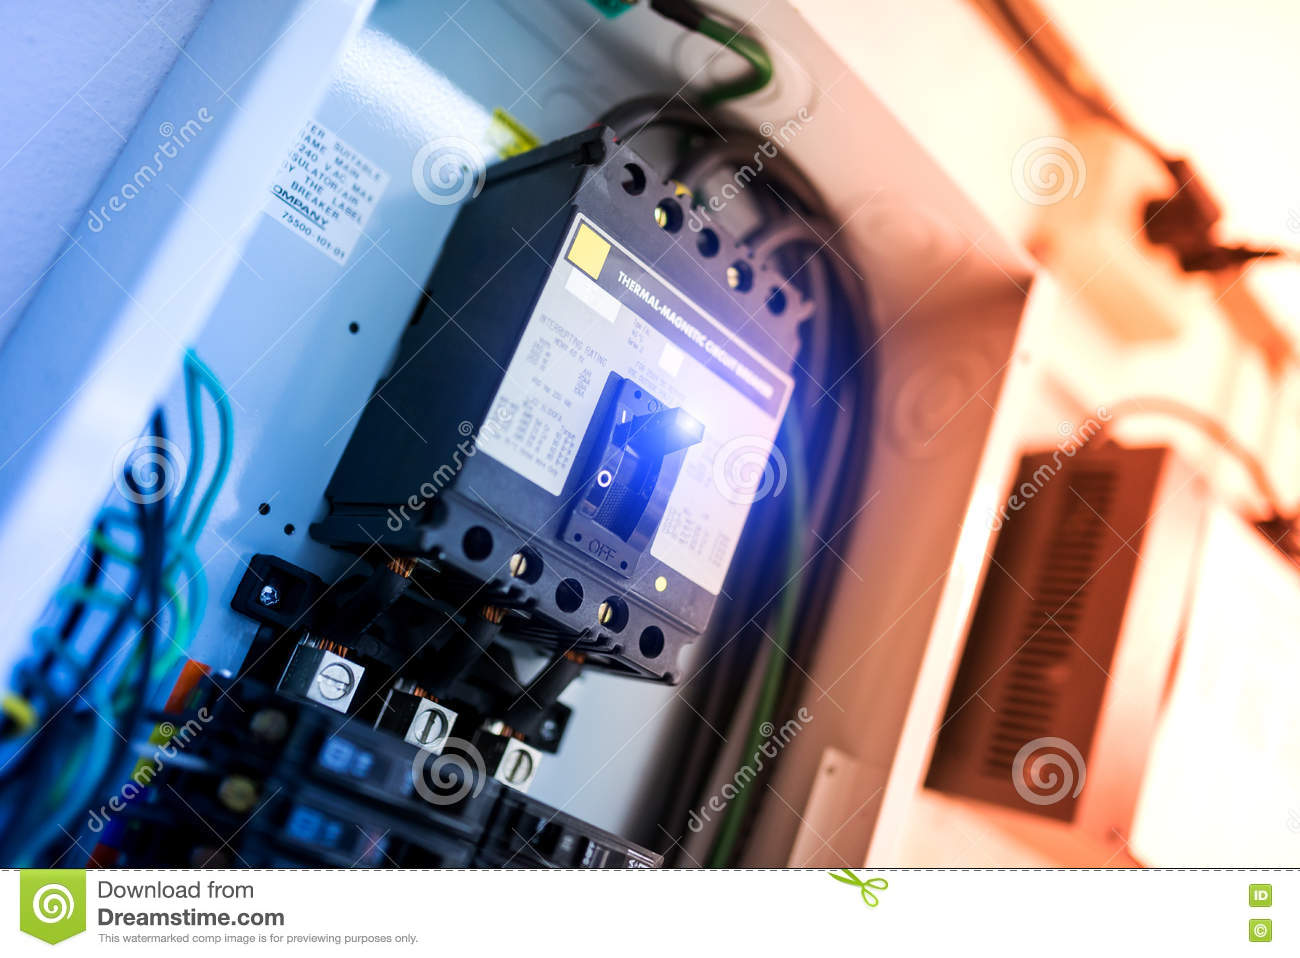 hight resolution of electric outdoor fuse box in soft light stock image image of fuse box placement on a 2015 lincoln mkz fuse box airplane